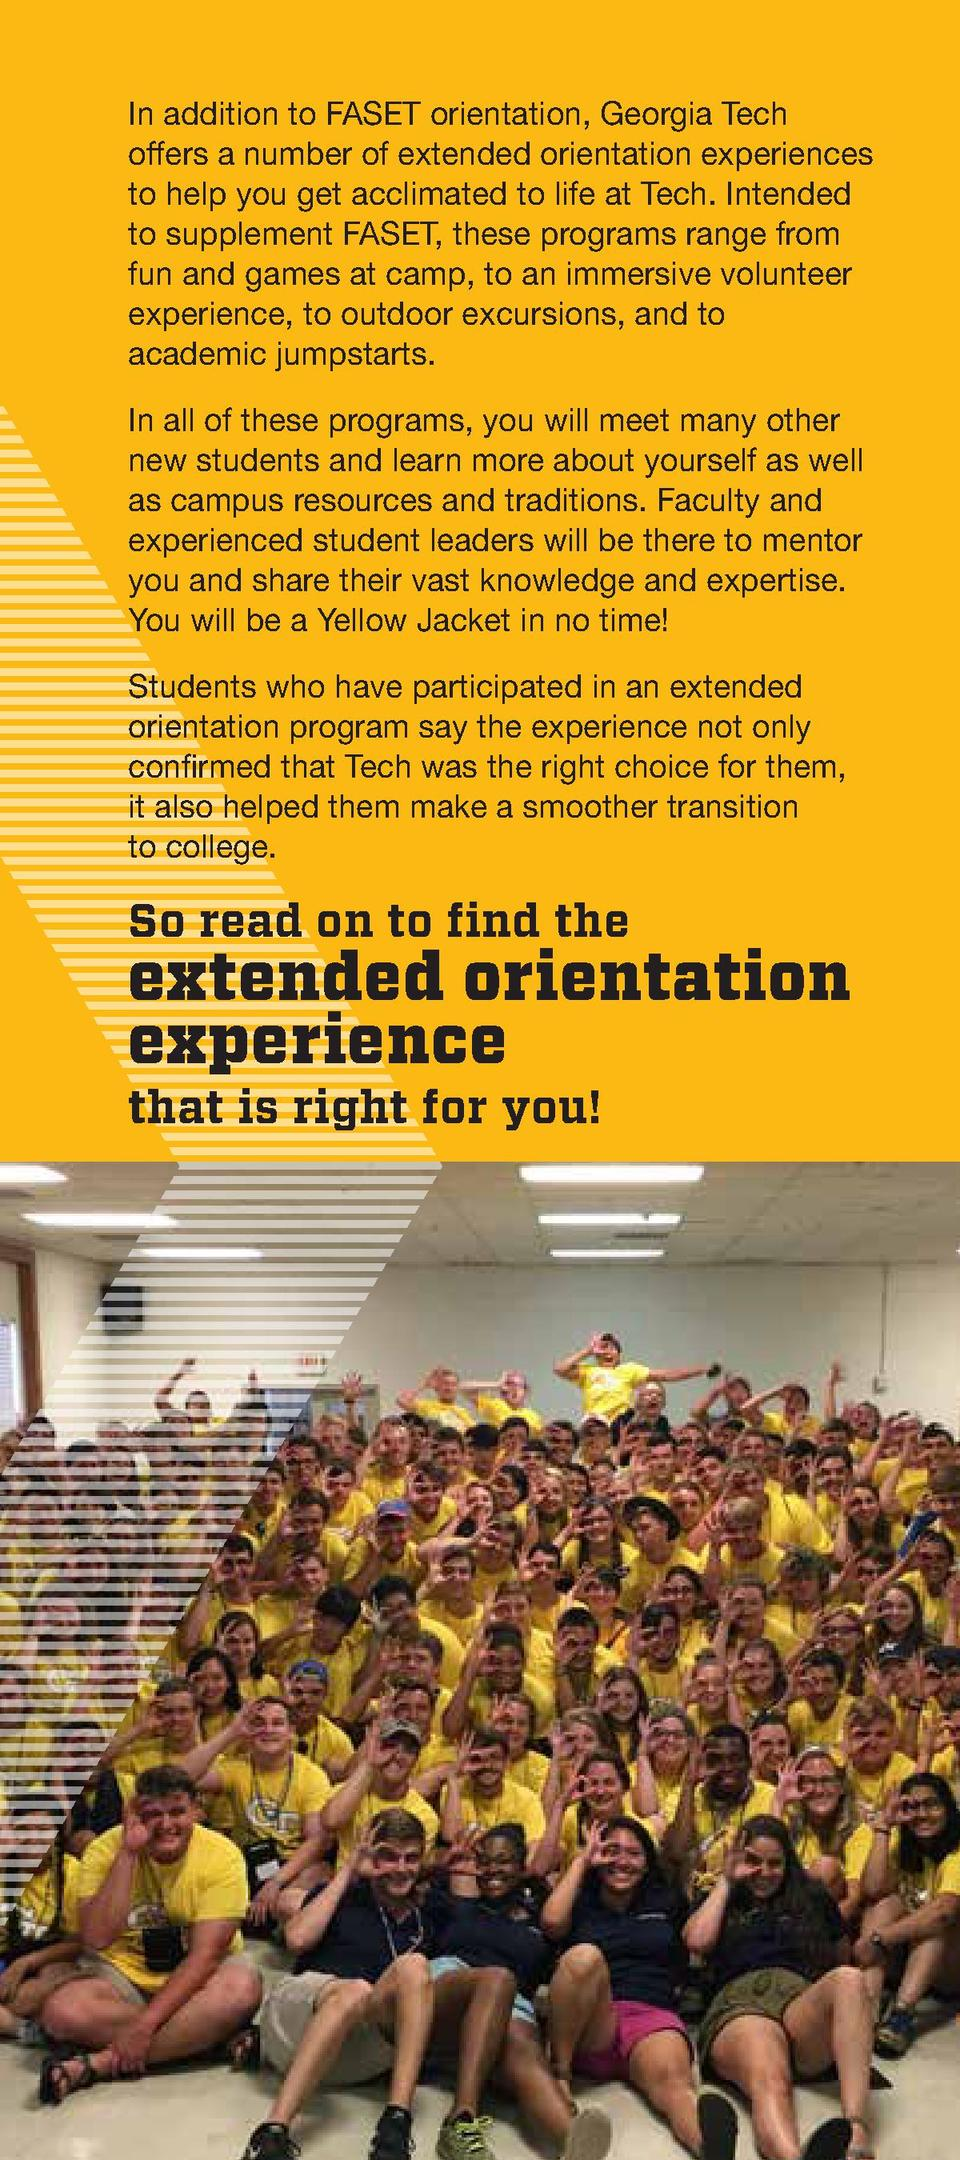 In addition to FASET orientation, Georgia Tech offers a number of extended orientation experiences to help you get acclima...